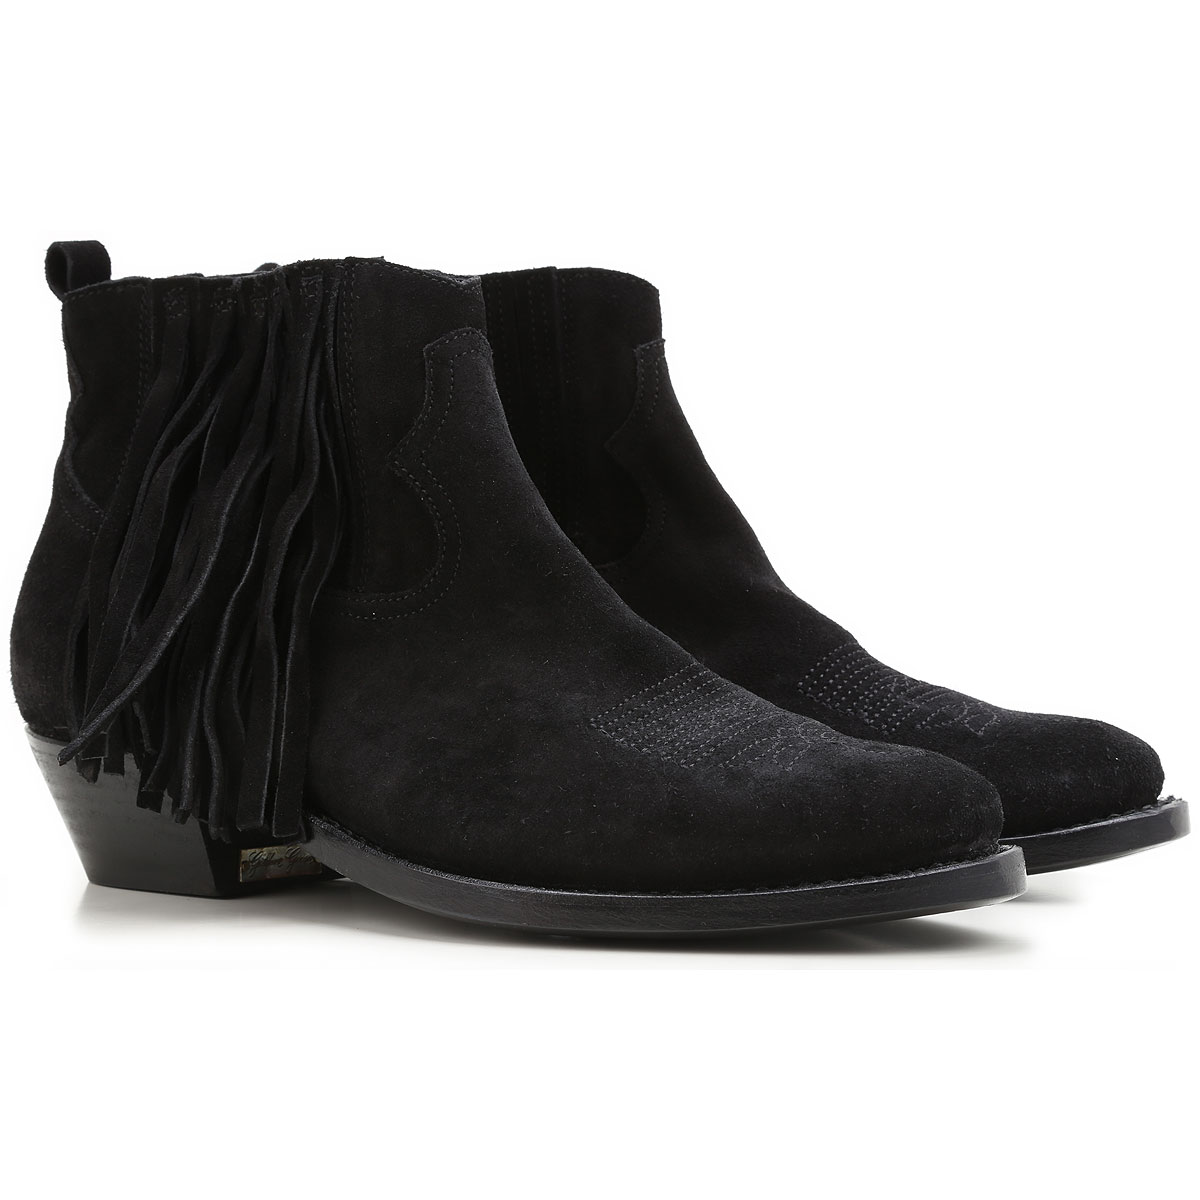 Golden Goose Boots for Women, Booties On Sale in Outlet, Black, suede, 2019, 7 8